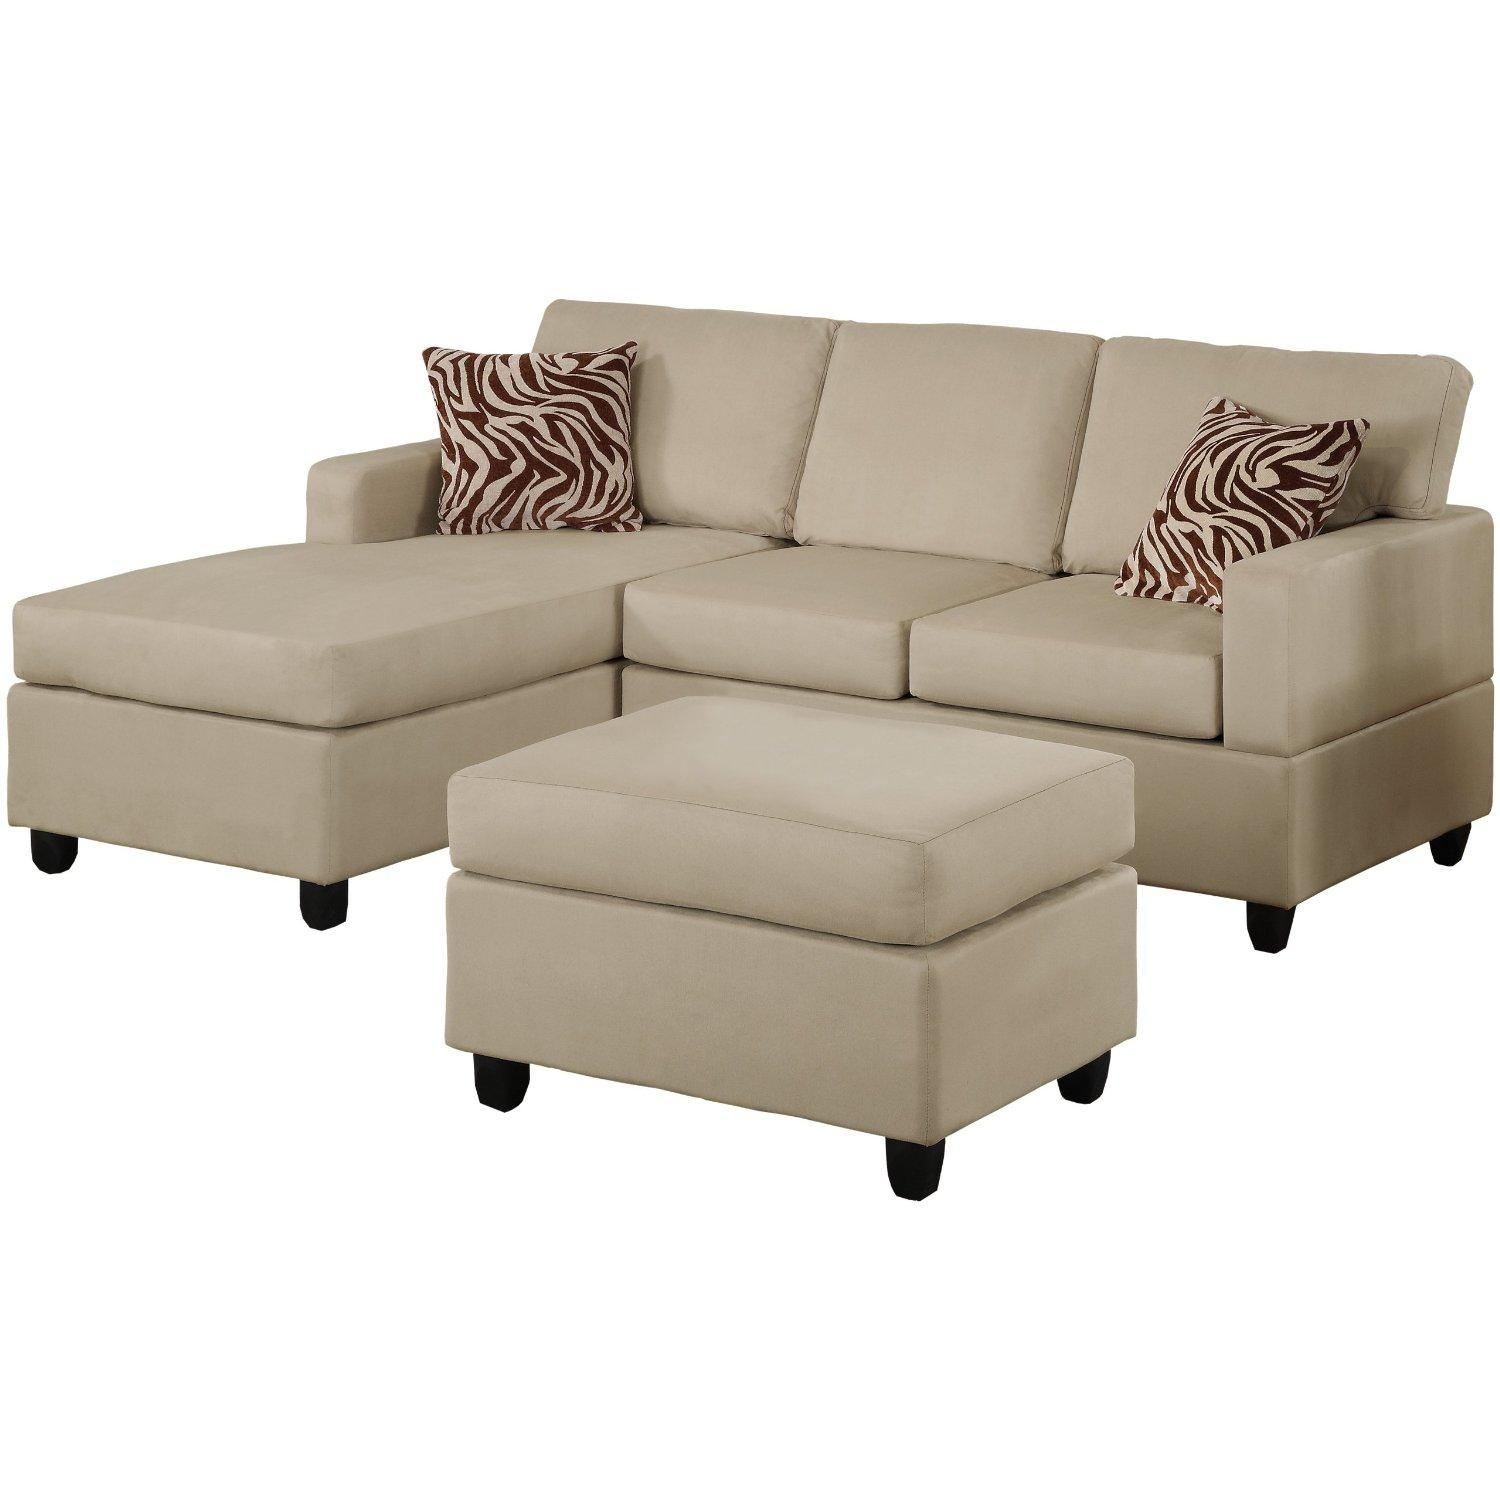 Furniture: Thomasville Sectional Sofas With Blends Classic Inside Thomasville Leather Sectionals (View 9 of 20)